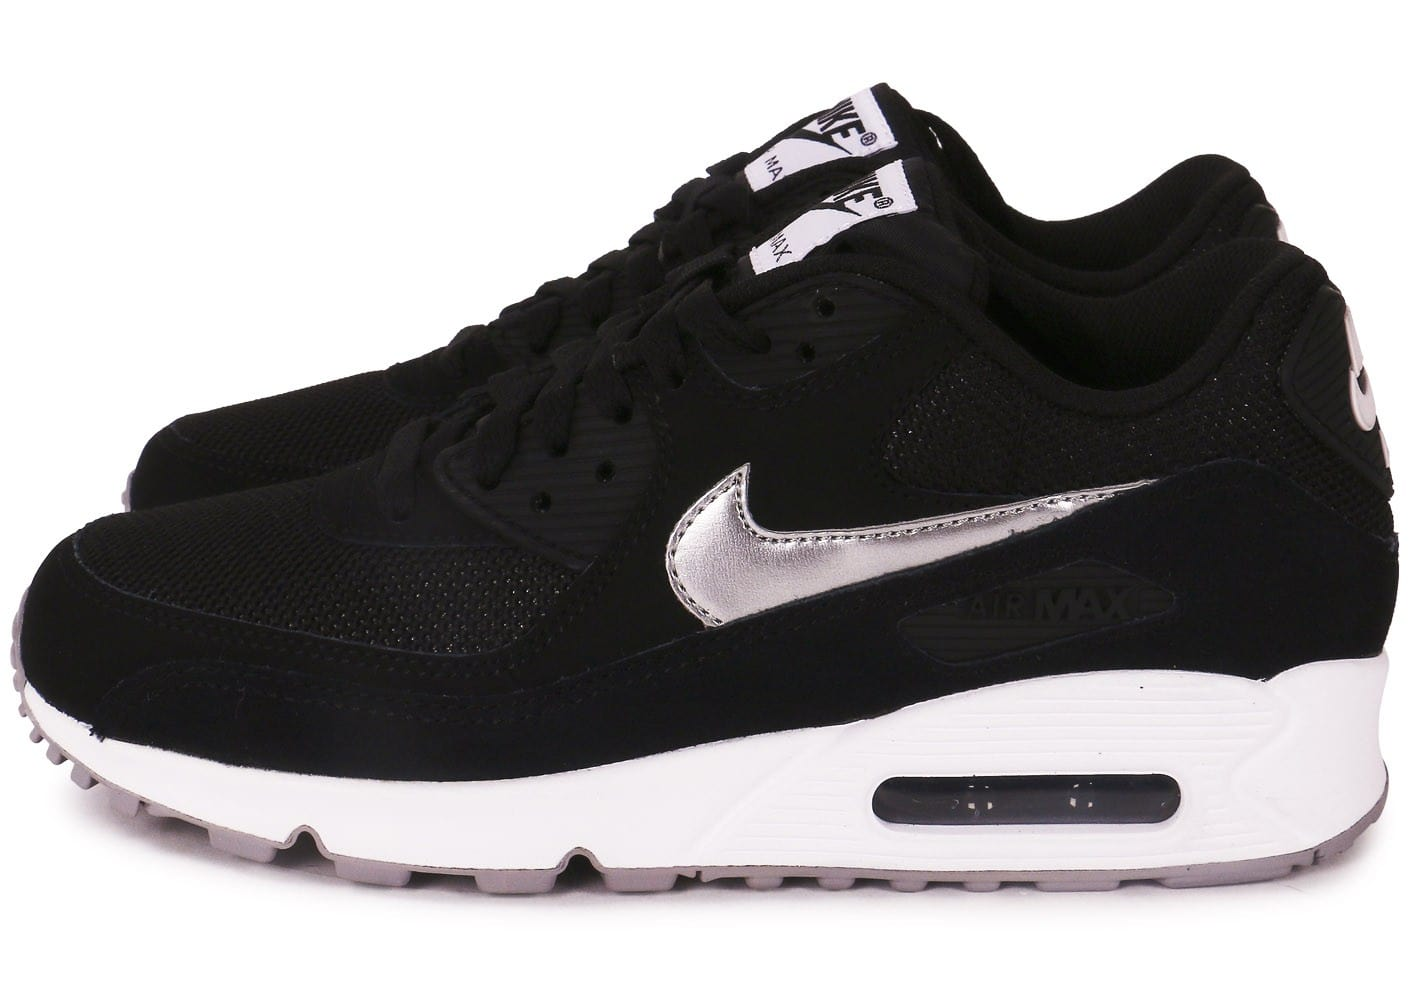 nike air max 90 noir et blanc chaussures homme chausport. Black Bedroom Furniture Sets. Home Design Ideas